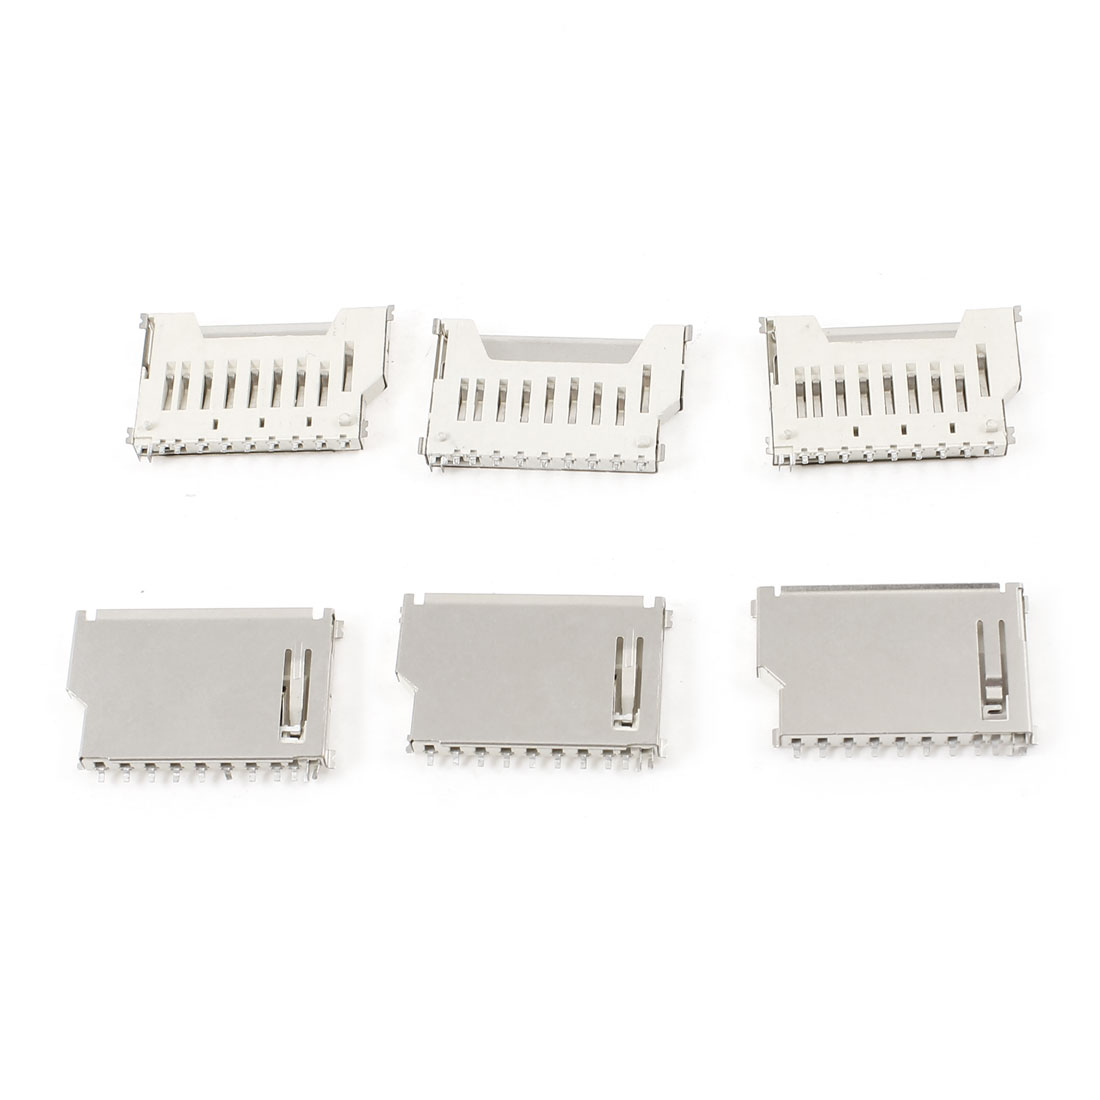 6 Pcs Metal Housing TF Micro SD Memory Card Sockets Connectors Slot